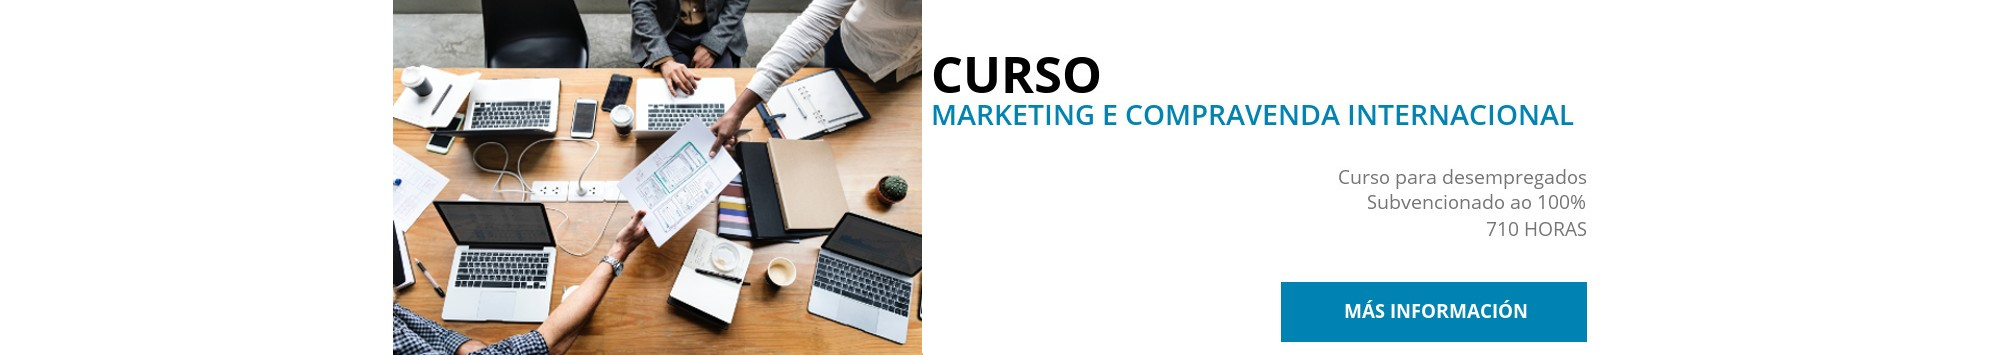 curso-marketing